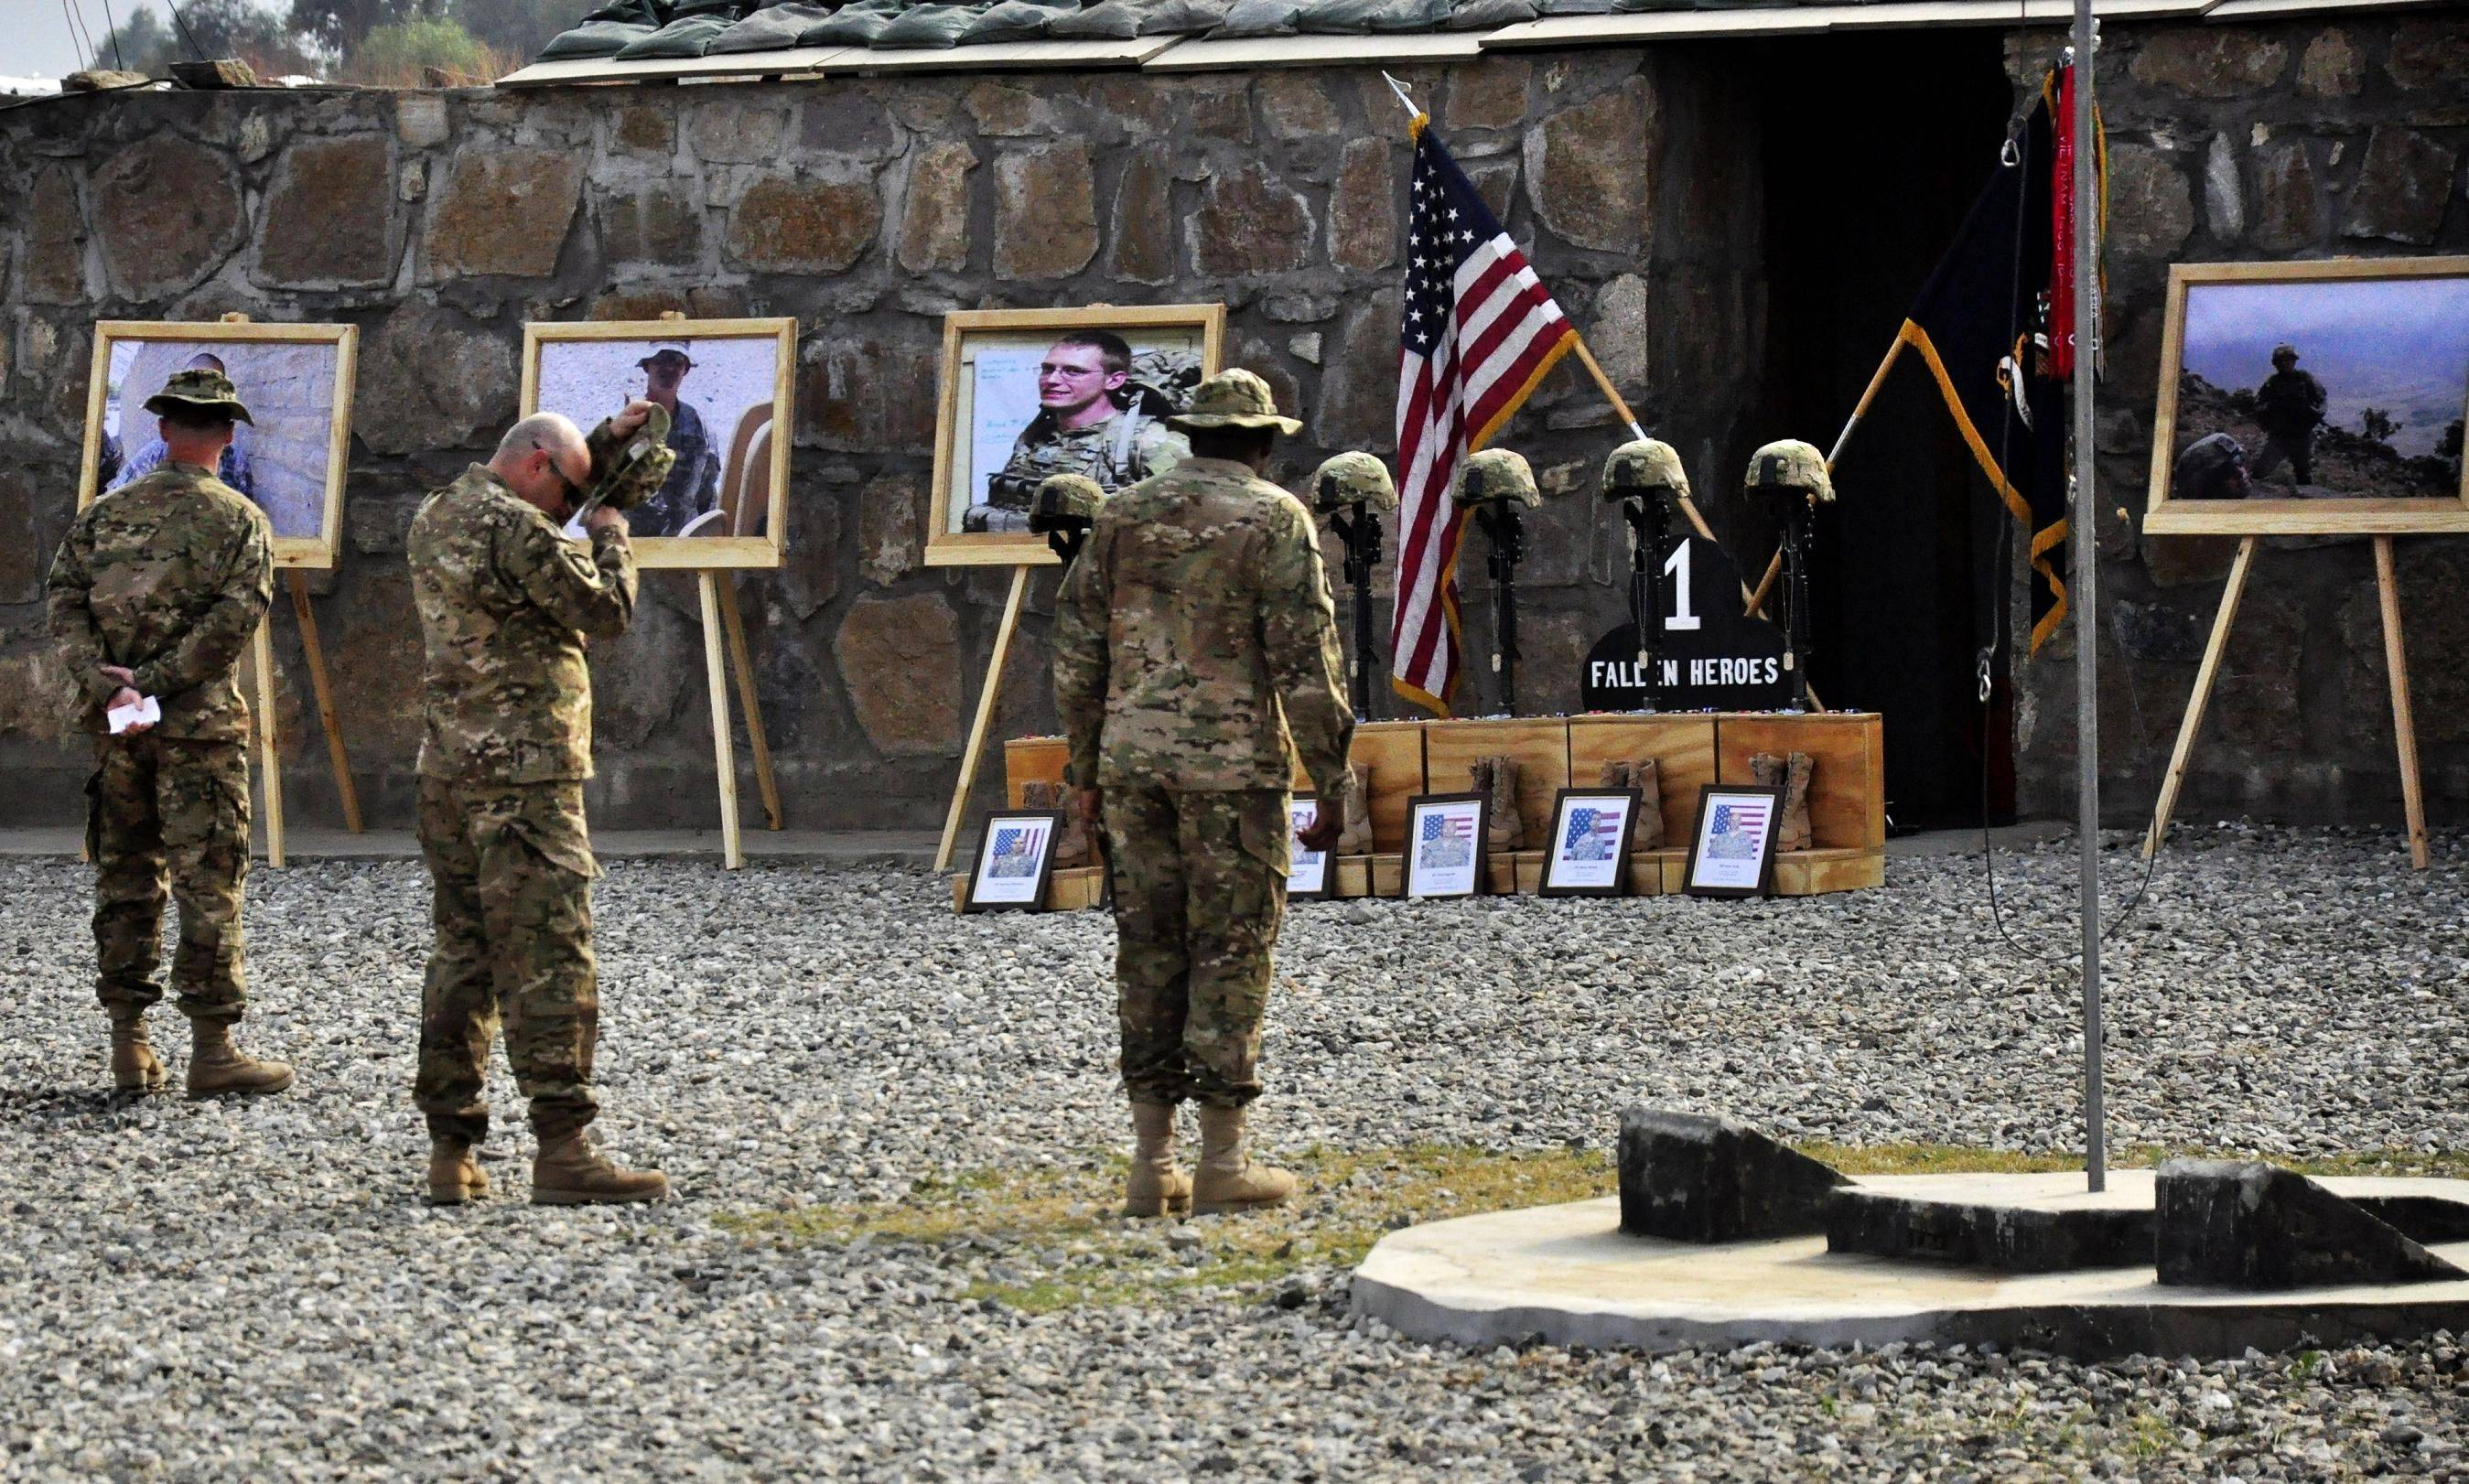 A memorial honors the six soldiers killed in battle last week in the Pech Valley region of Afghanistan.